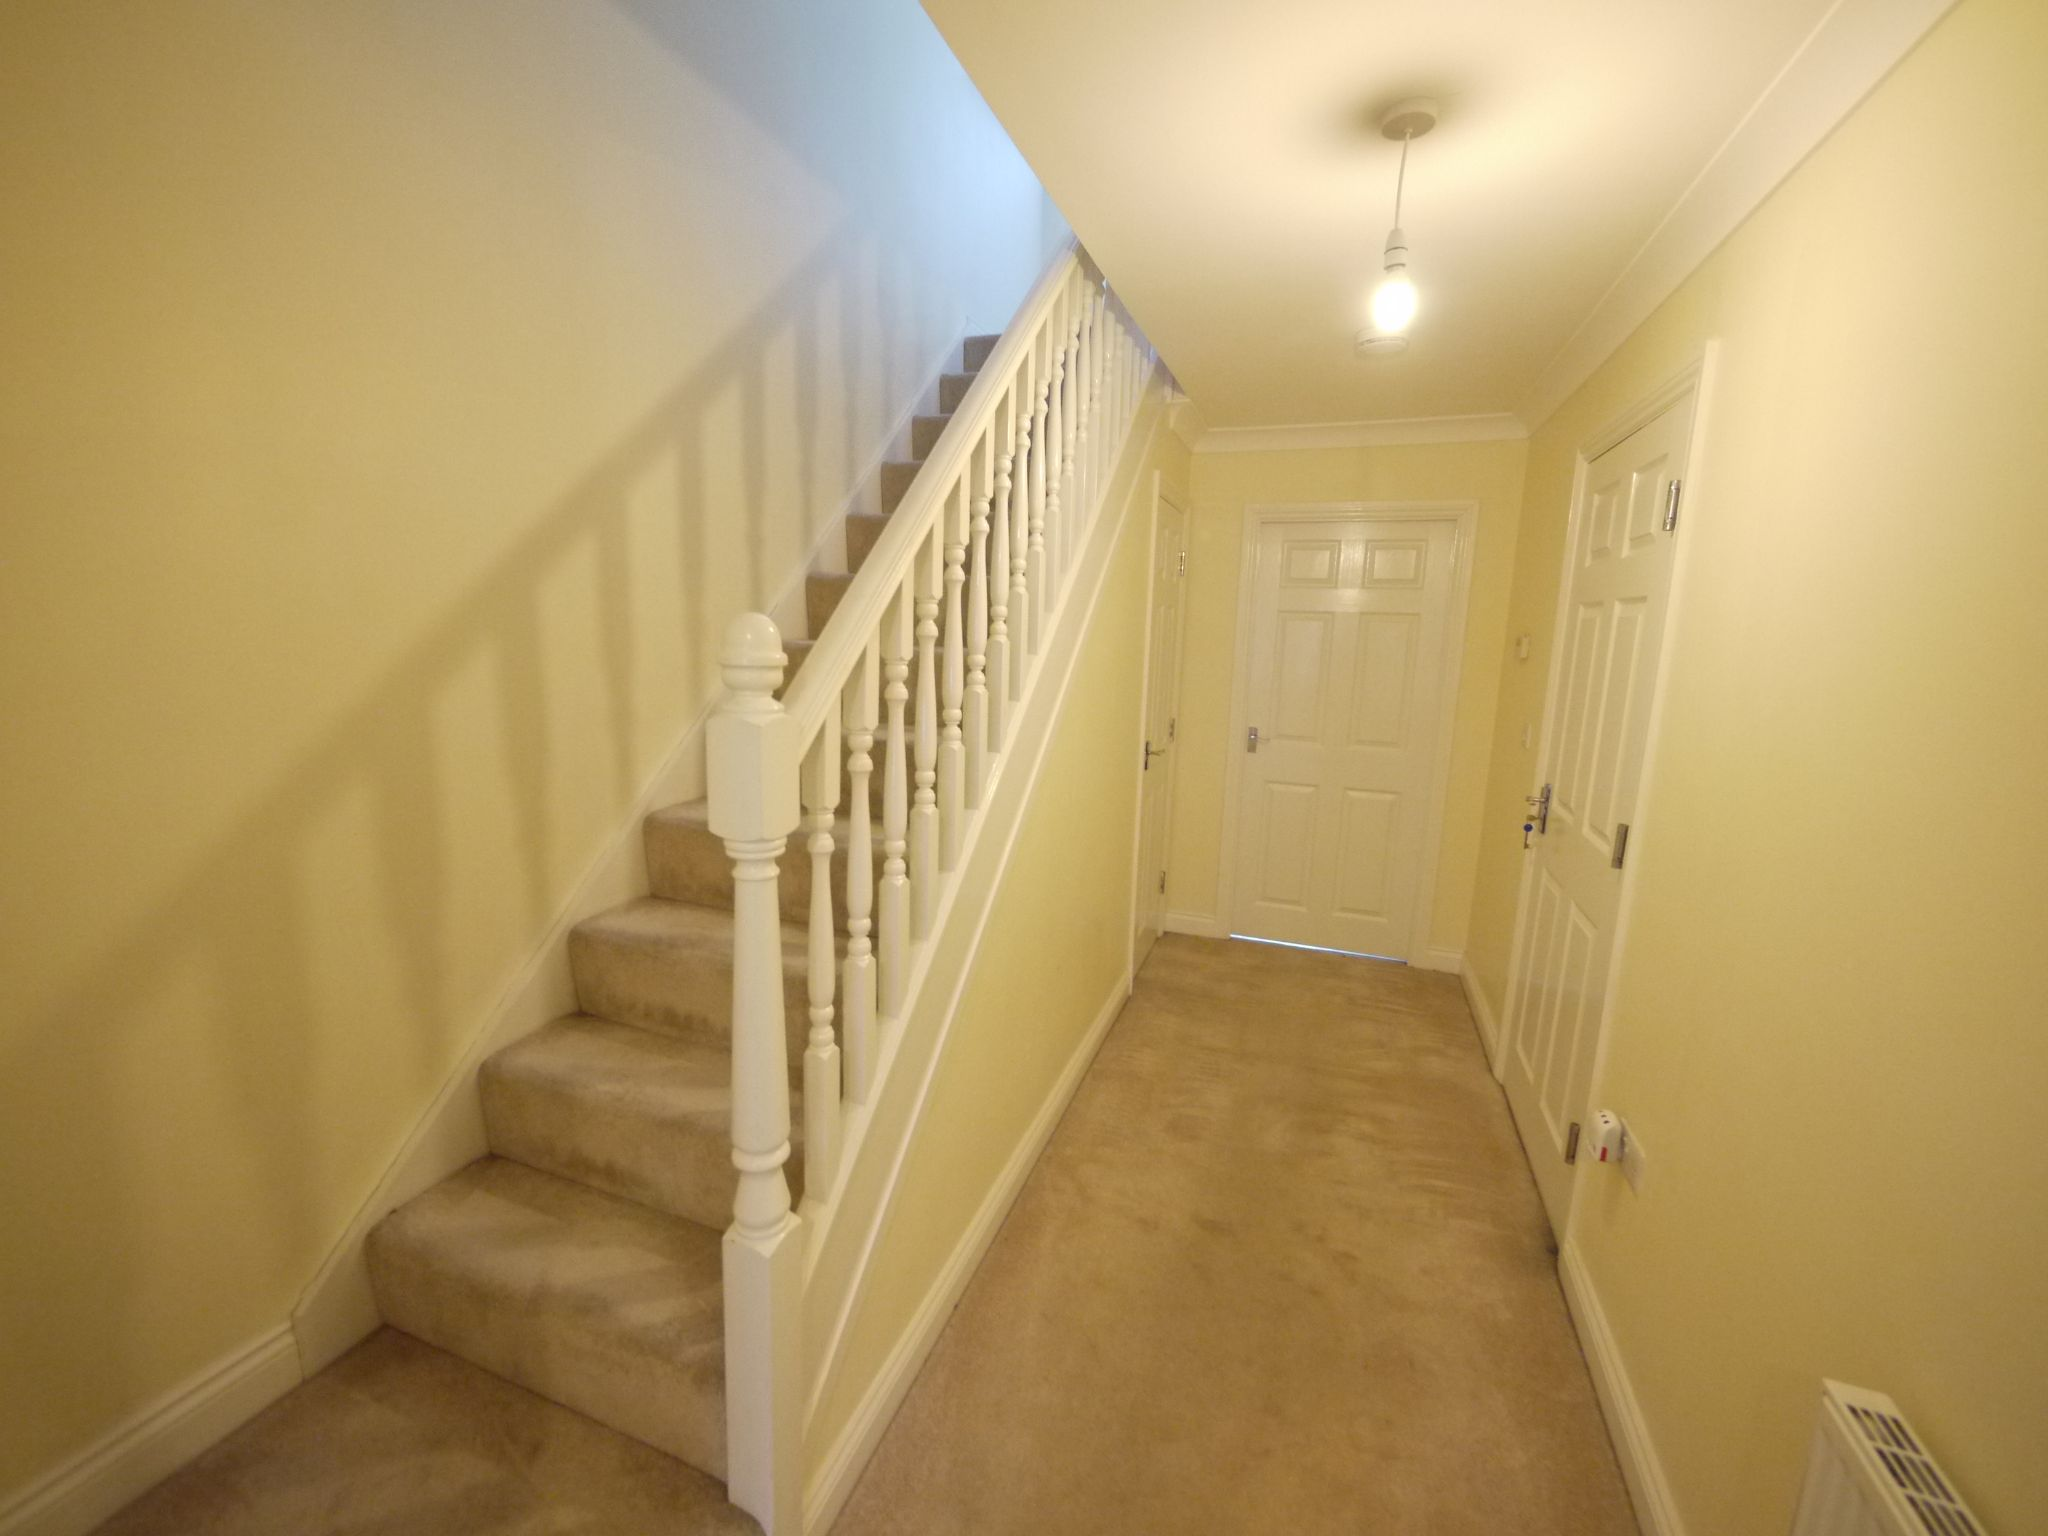 3 bedroom town house SSTC in Mirfield - Photograph 10.